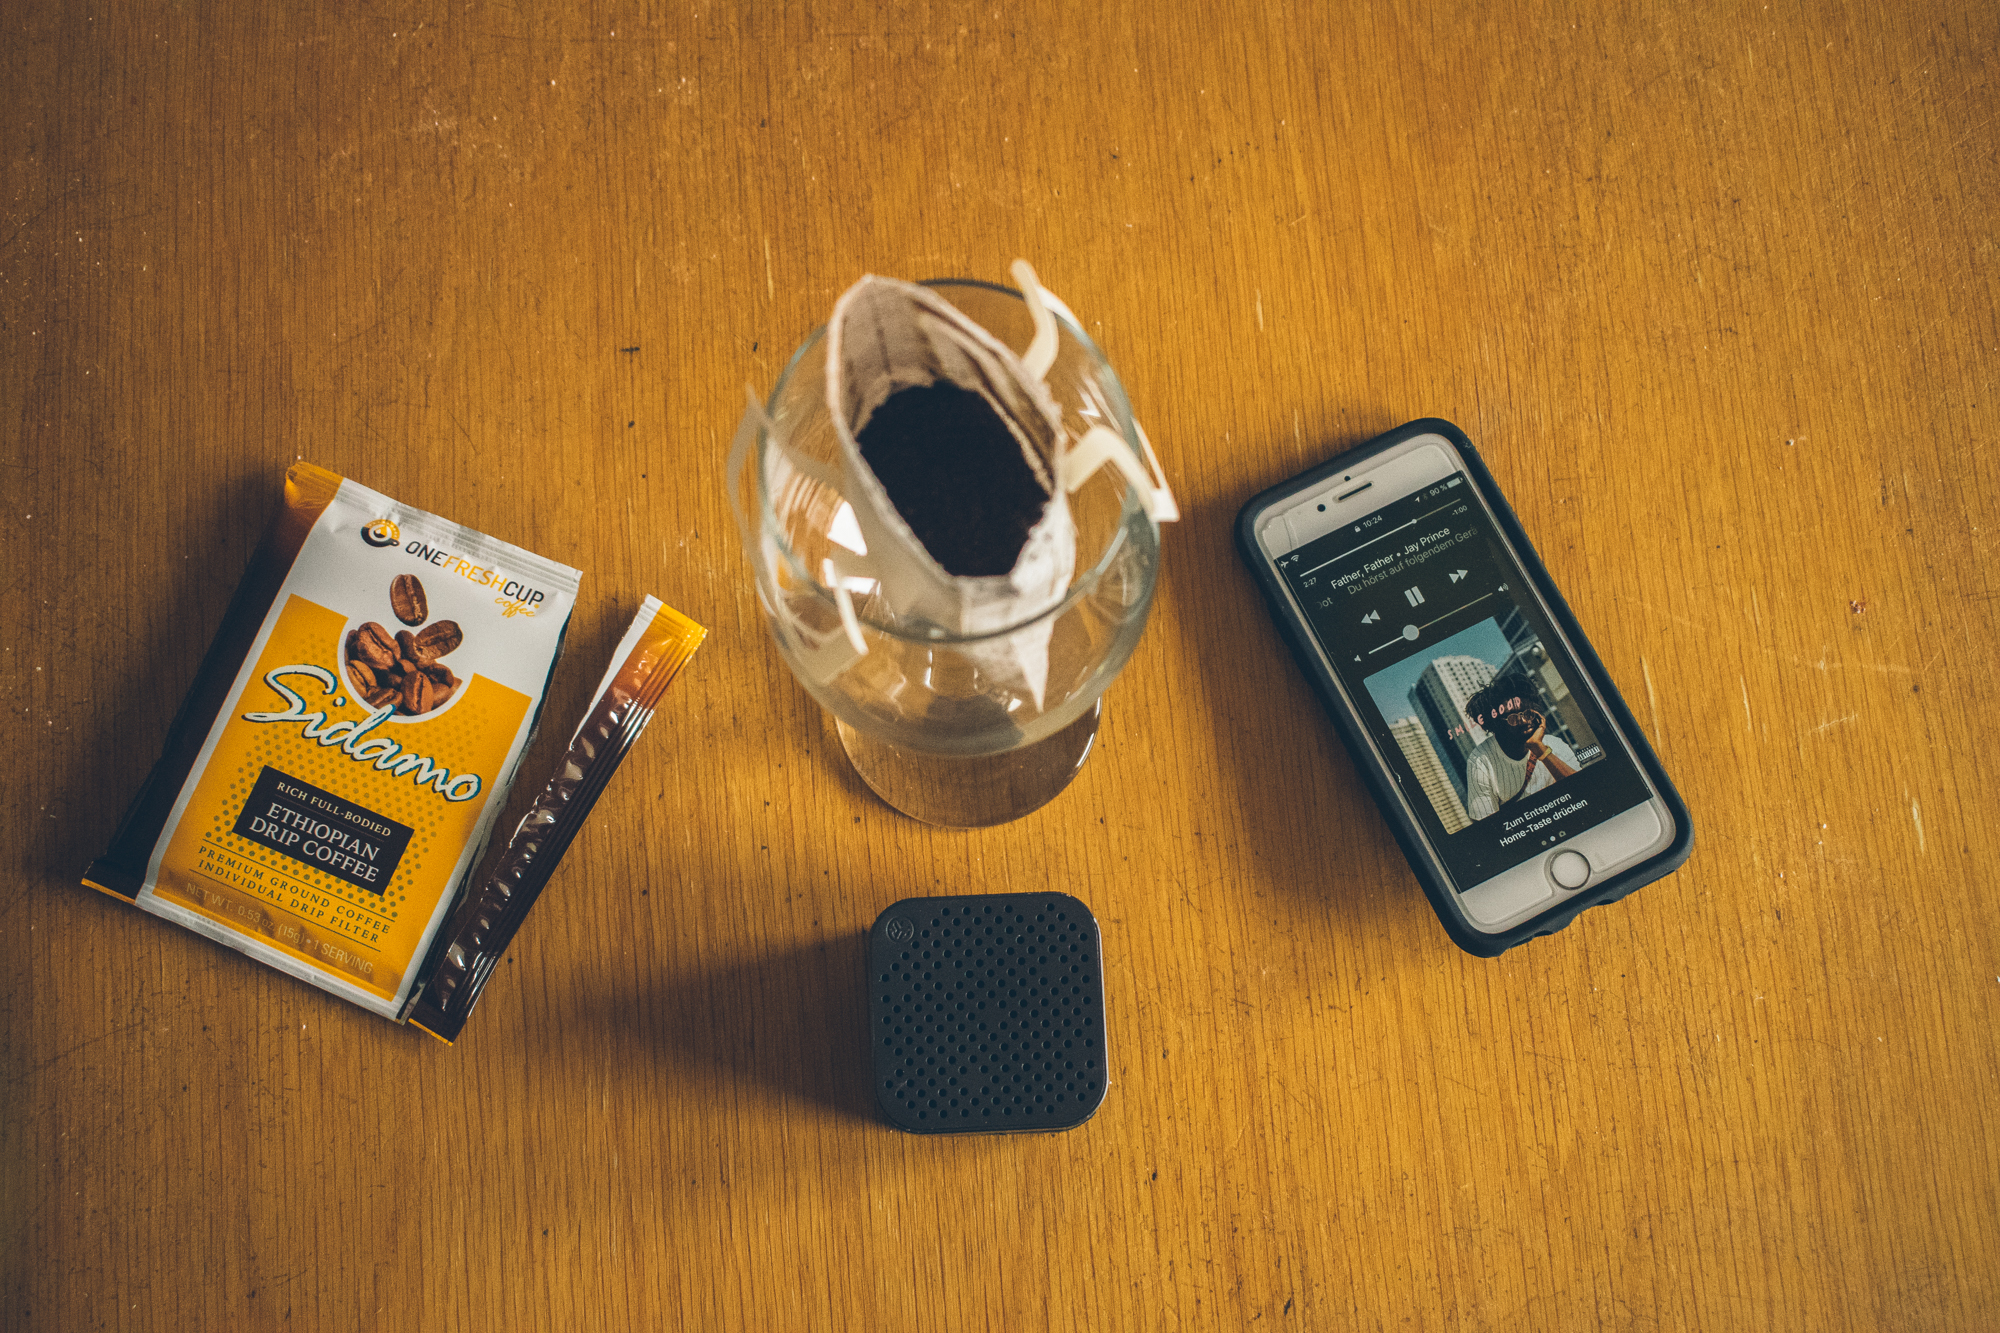 The early morning essentials courtesy of One Fresh Cup & JLab Audio